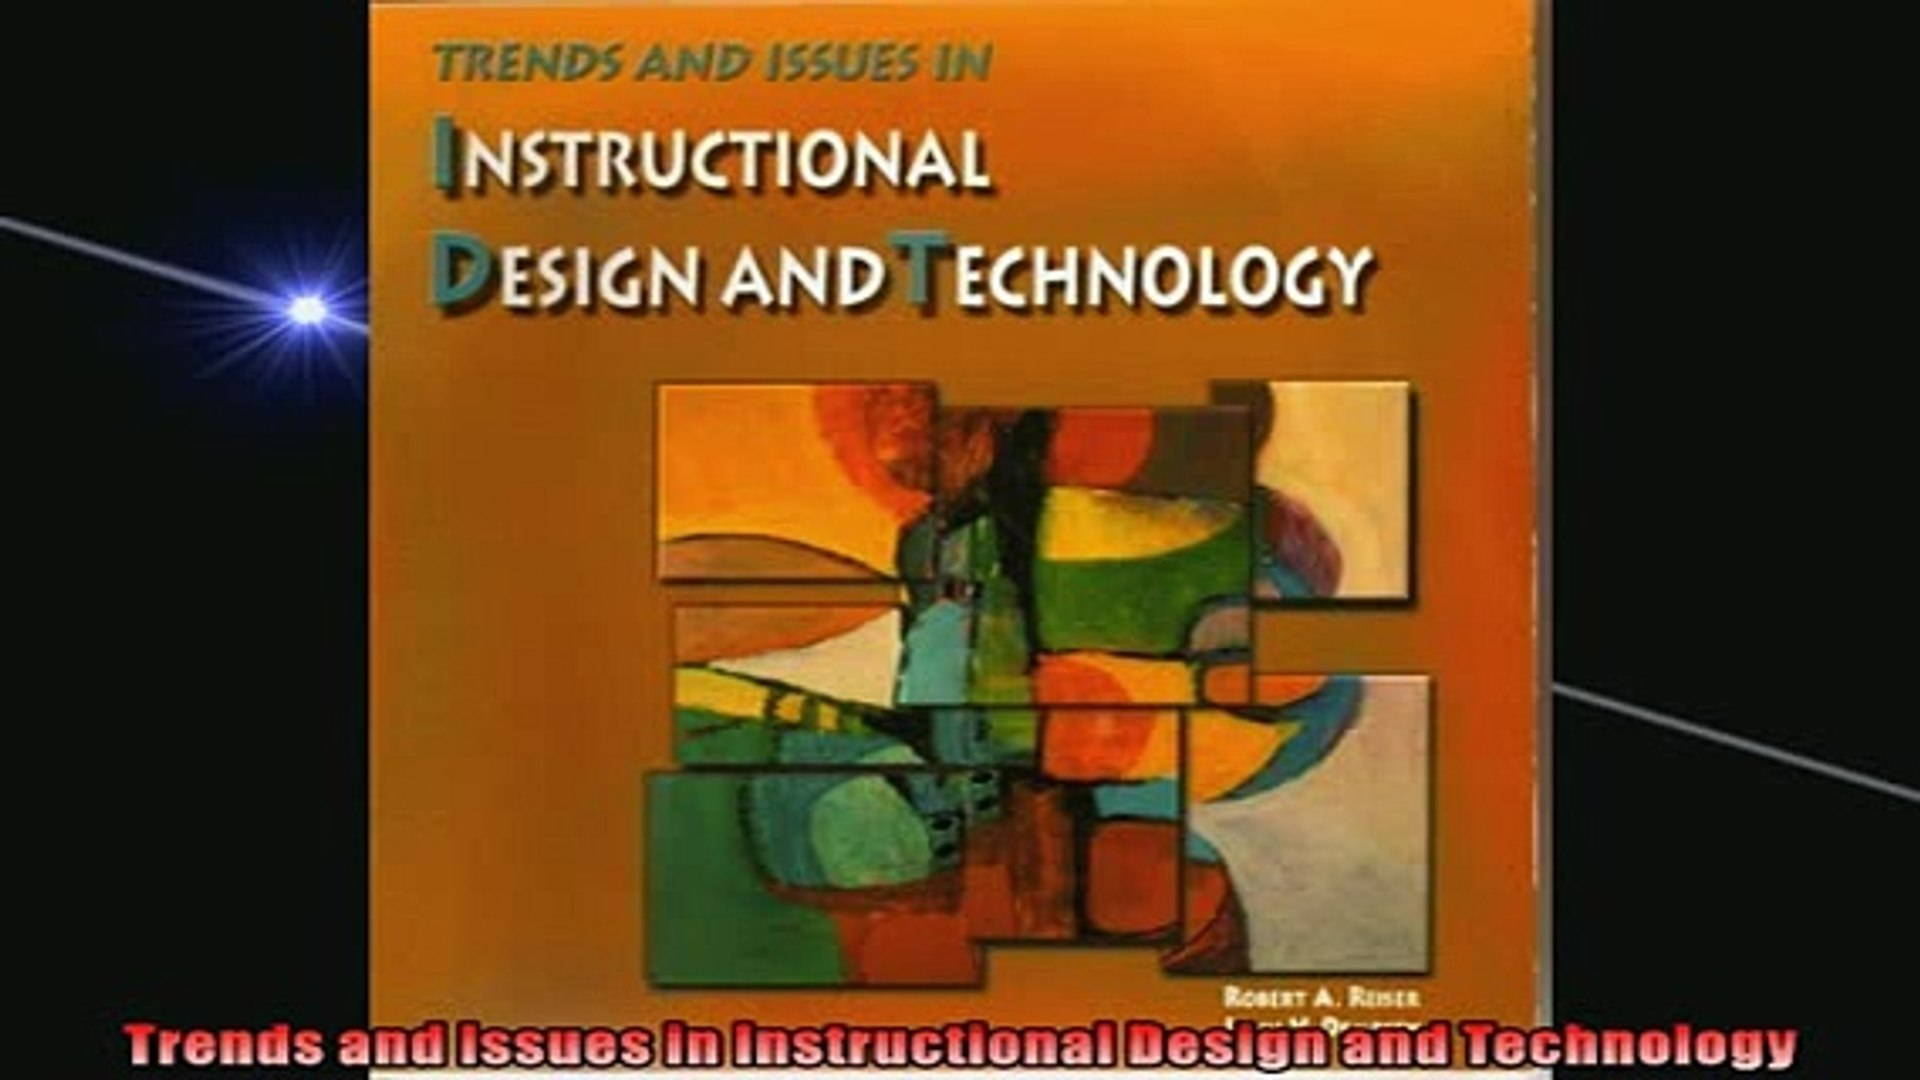 Read Book Trends And Issues In Instructional Design And Technology Free Boook Online Video Dailymotion